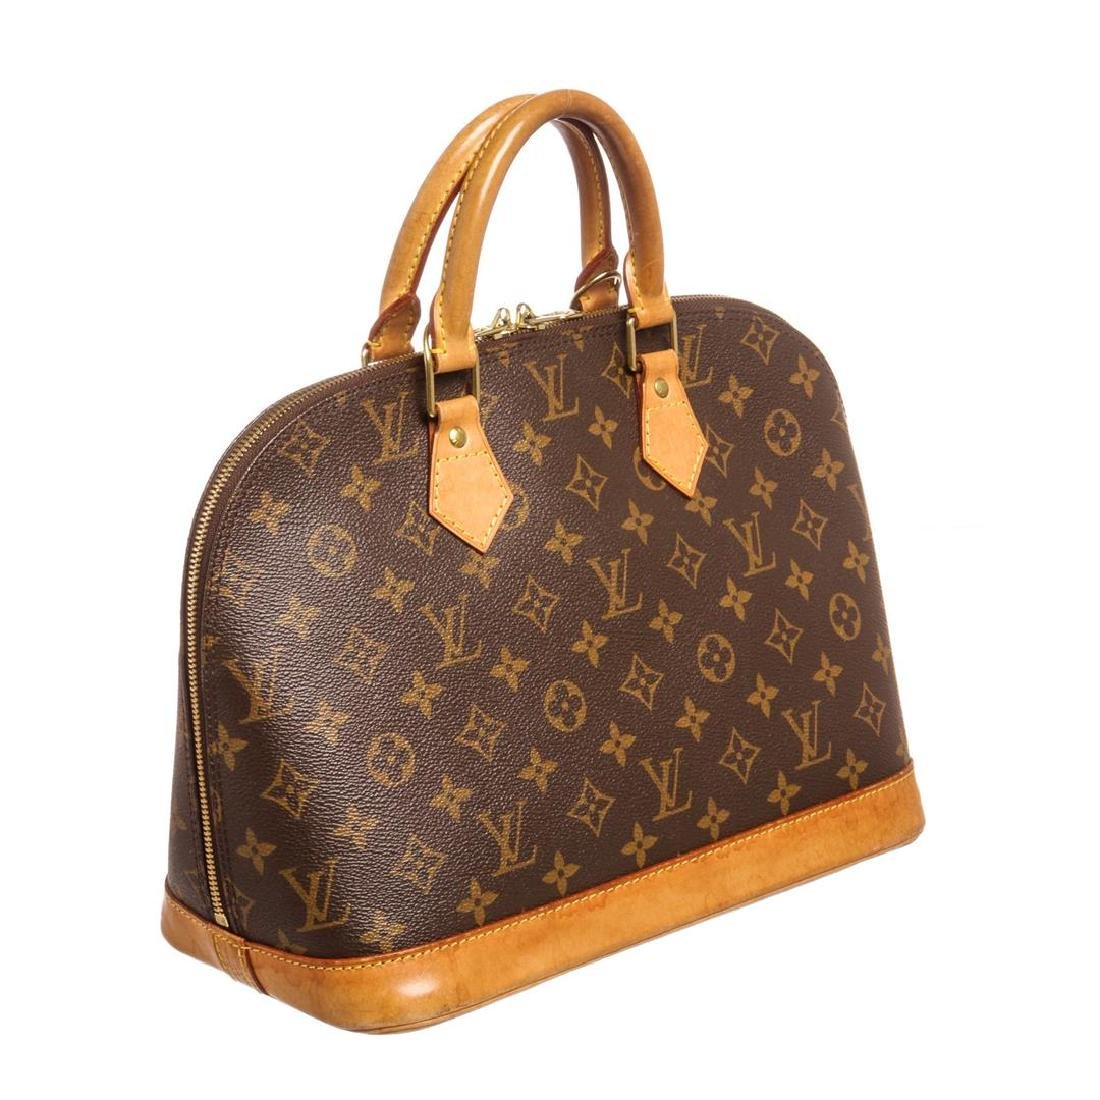 Louis Vuitton Monogram Canvas Leather Alma PM Handbag - 3